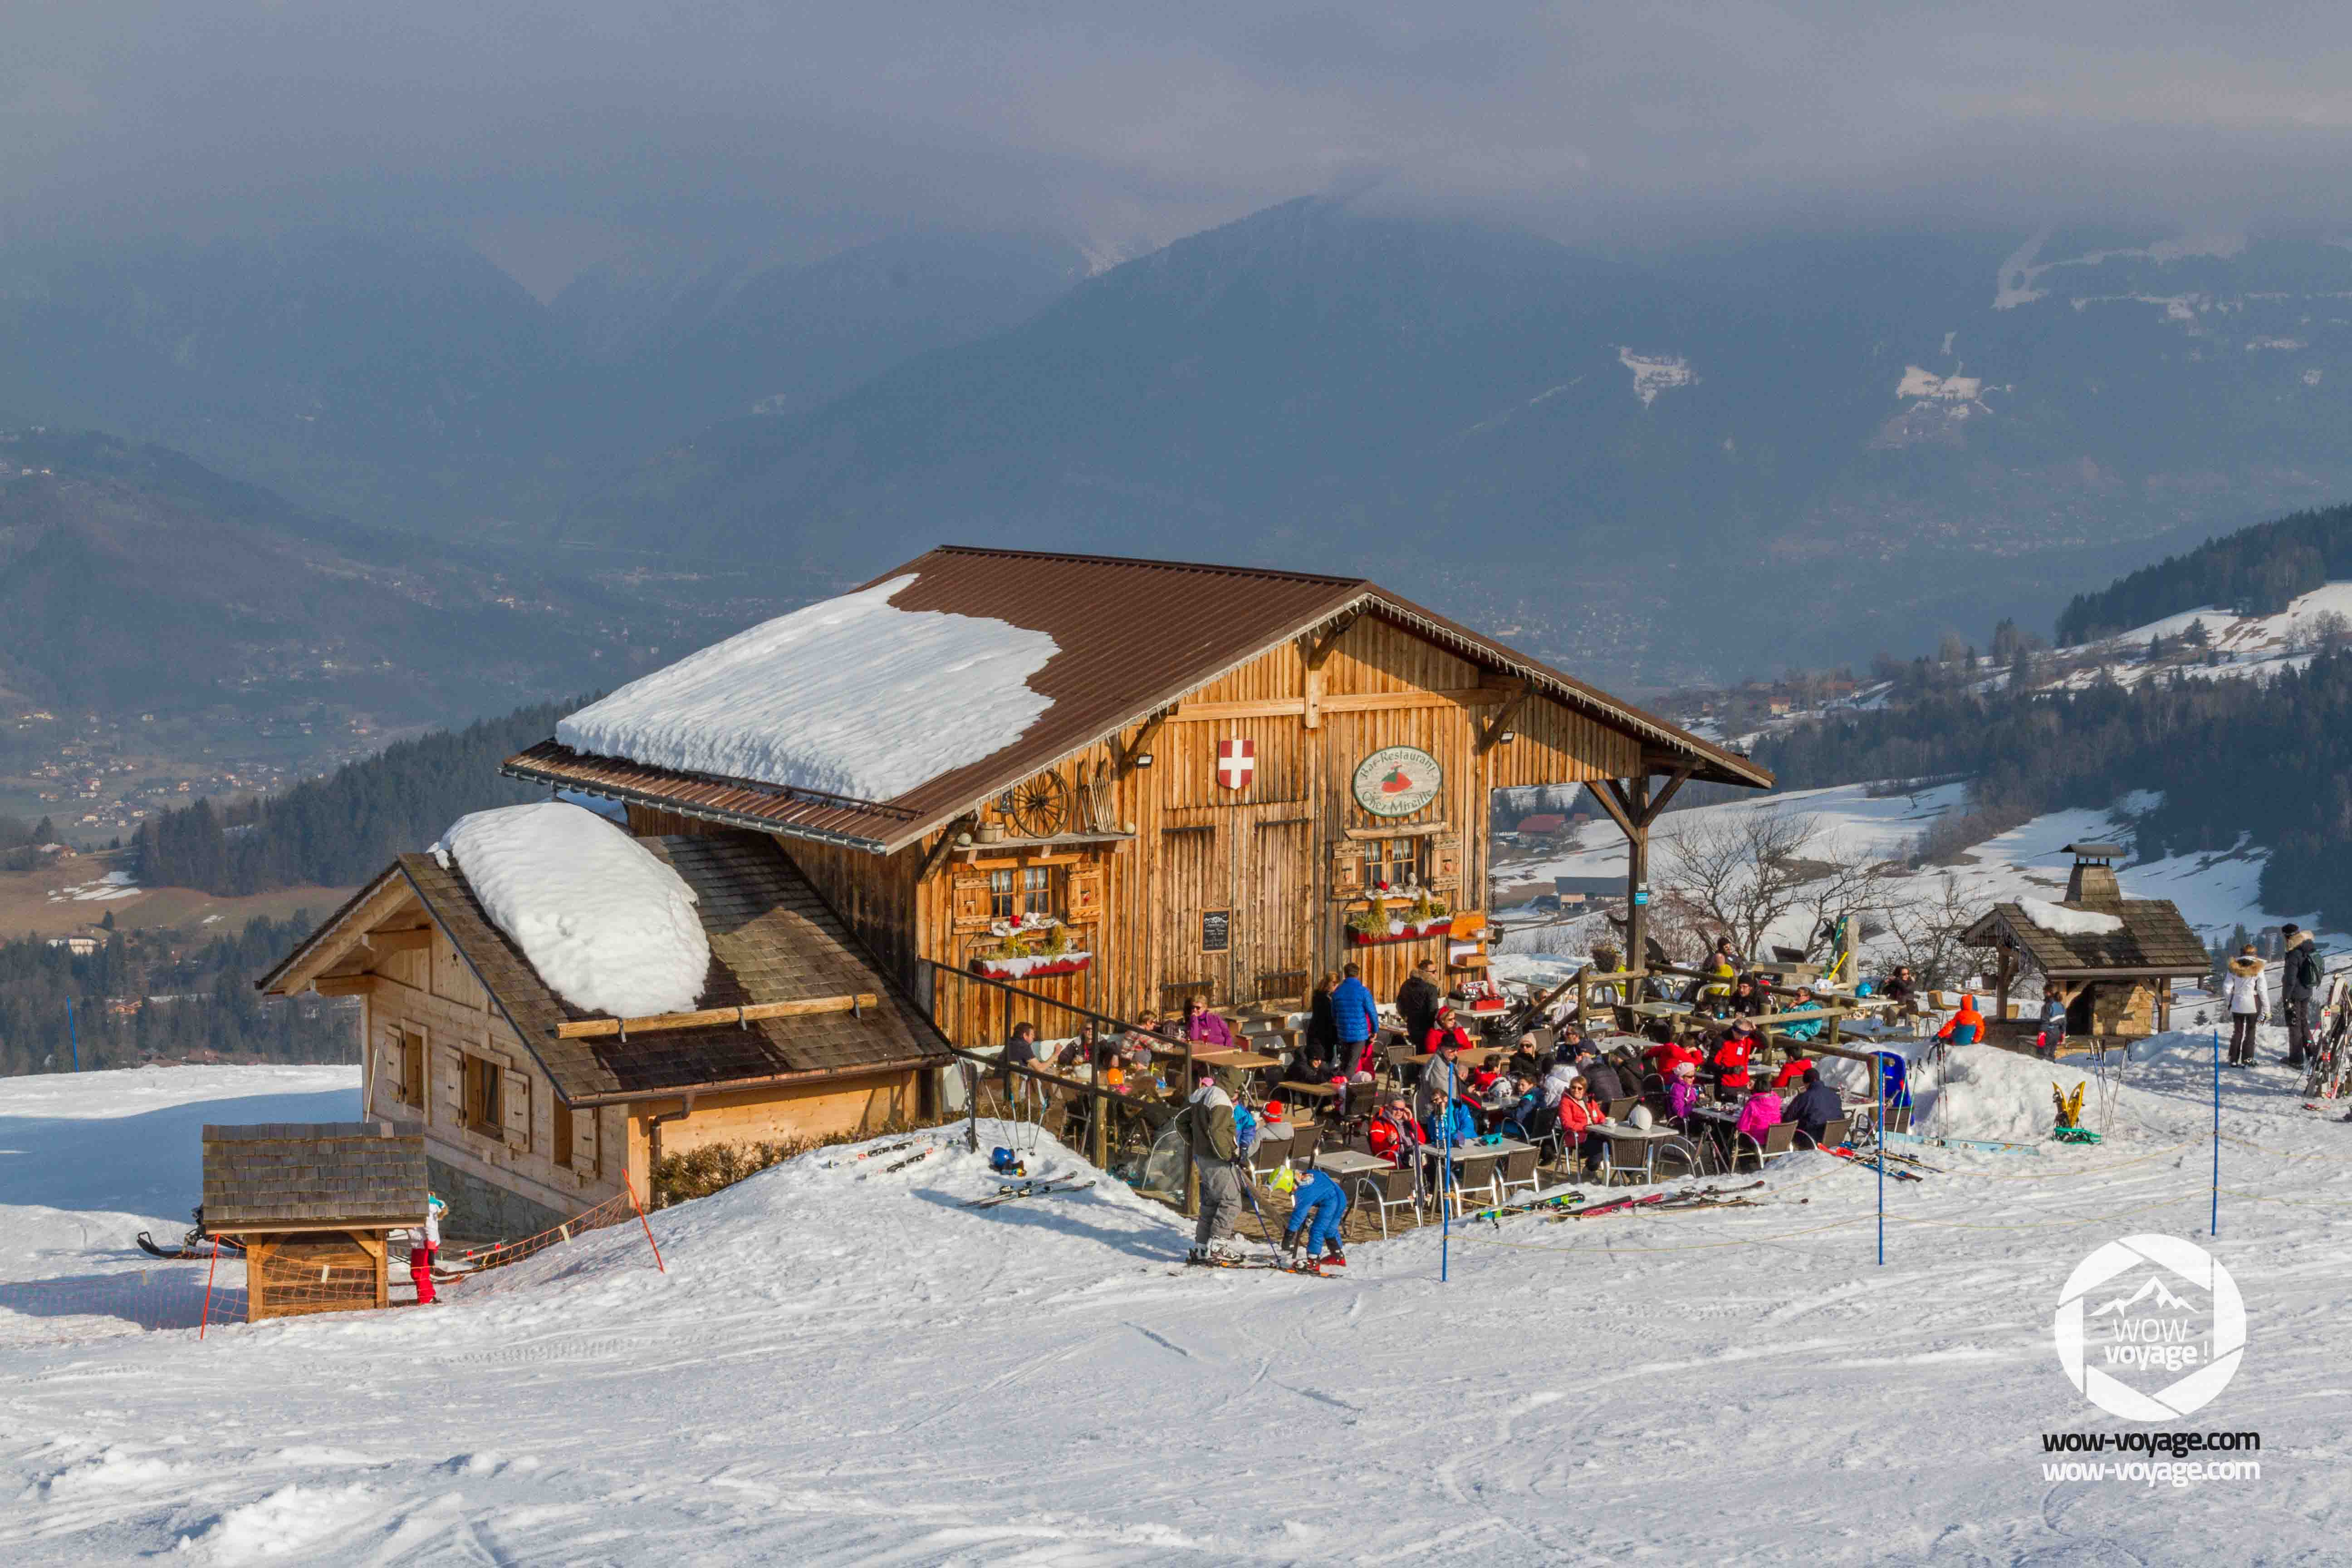 typical alpine chalet where people are restoring